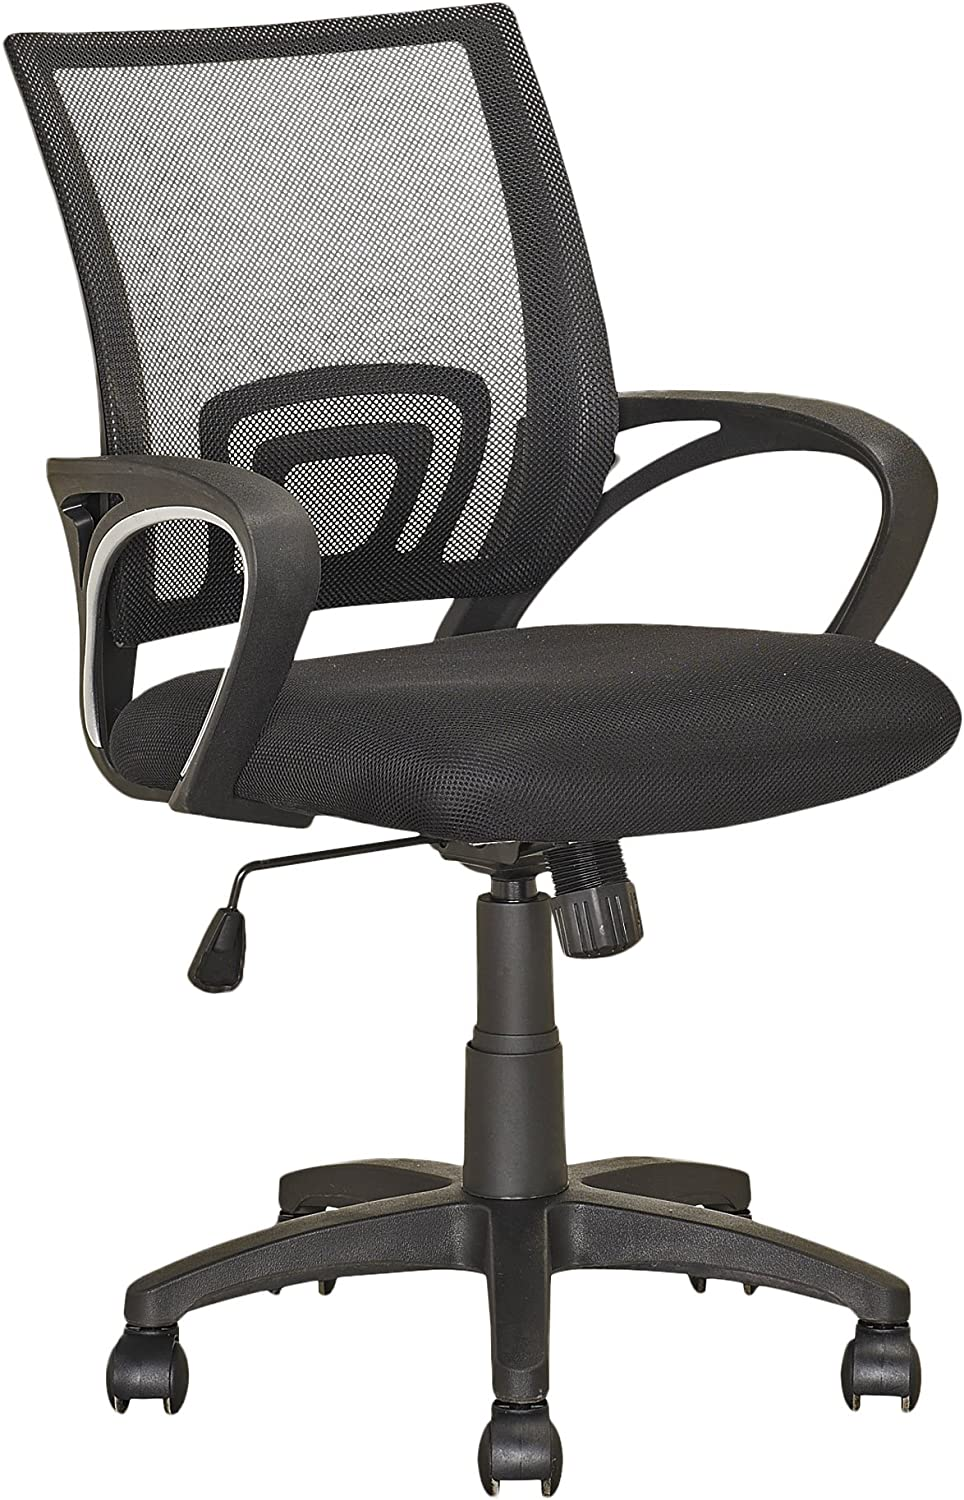 CorLiving Workspace Office chair, Black